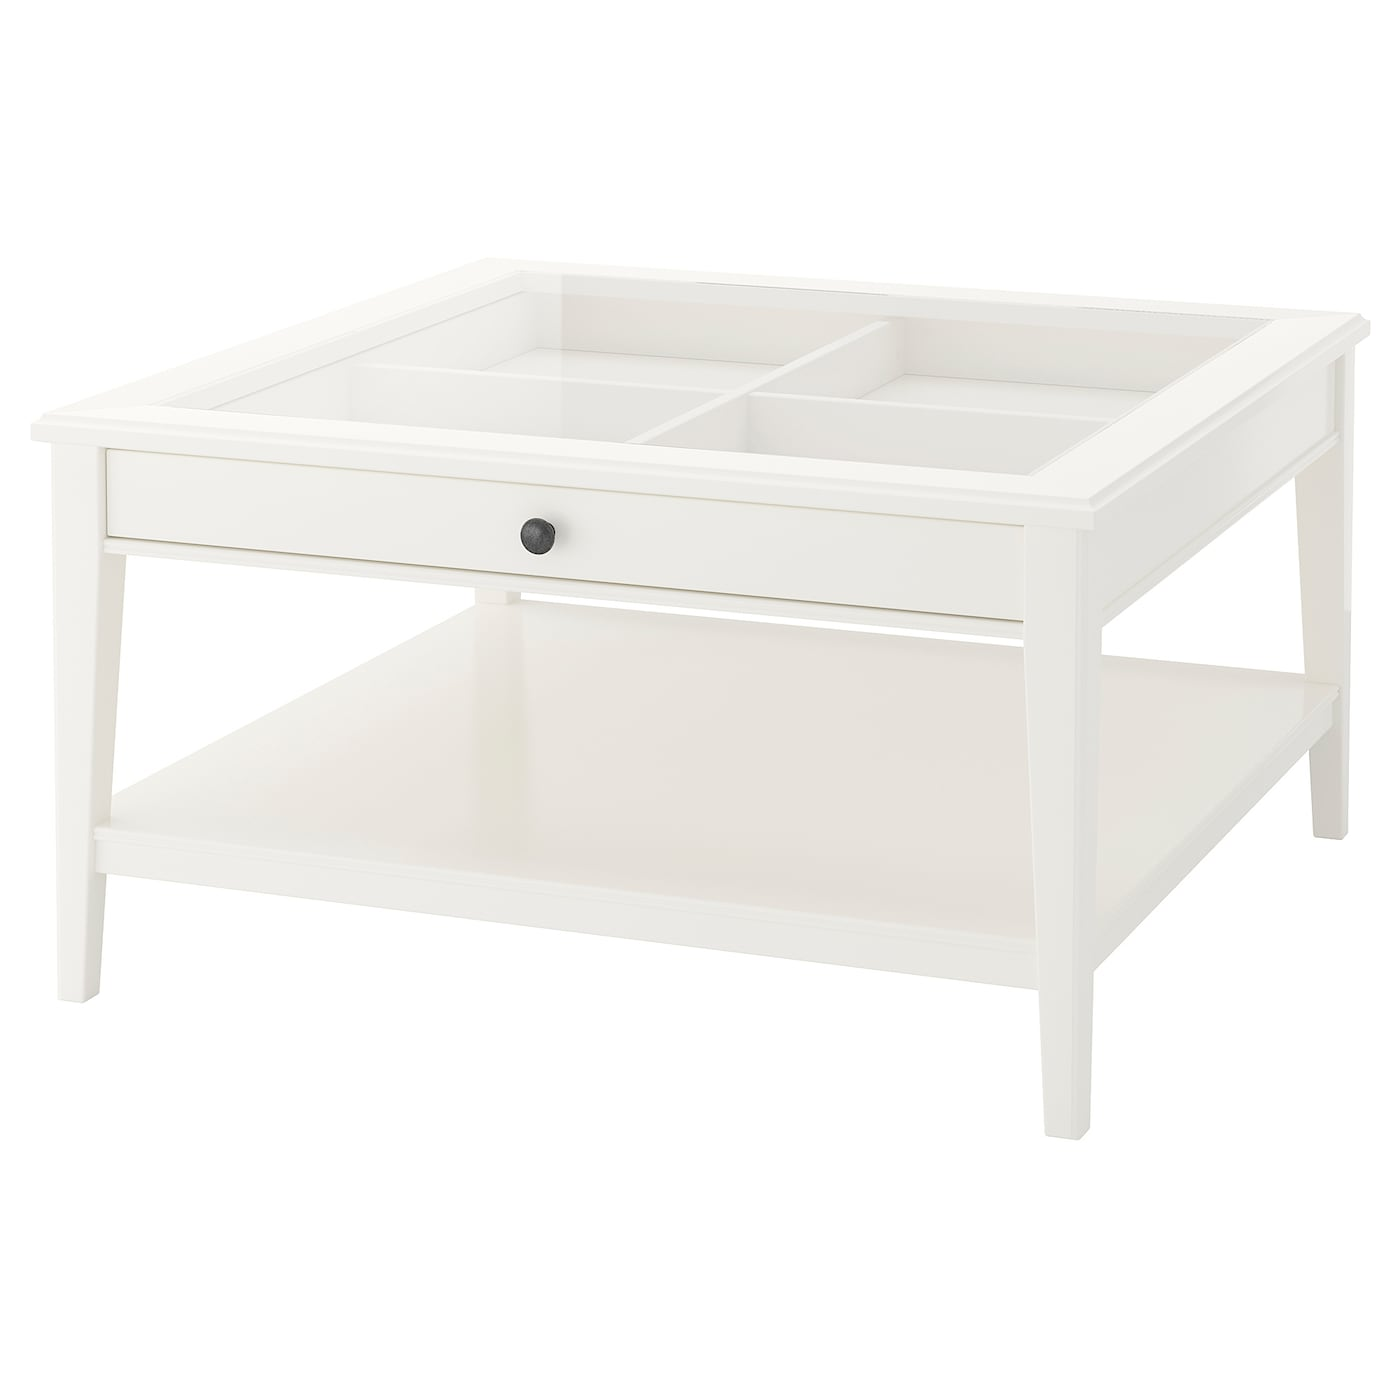 rp-coffee-table-white-glass__0735600_PE740026_S5